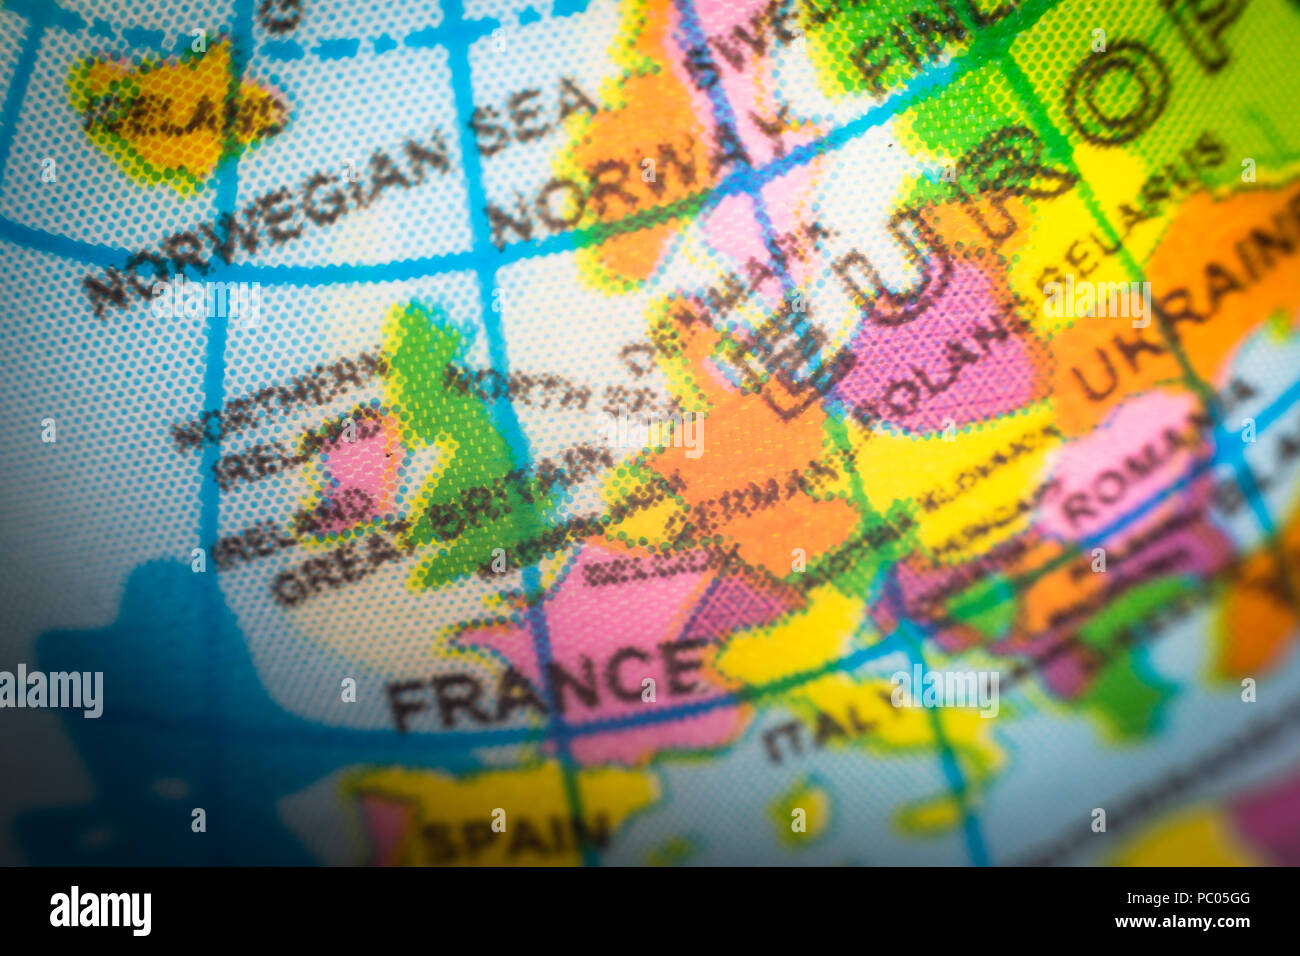 Childu0027s Globe Showing Europe Countries. Concept For Brexit And EU European  Union   Stock Image